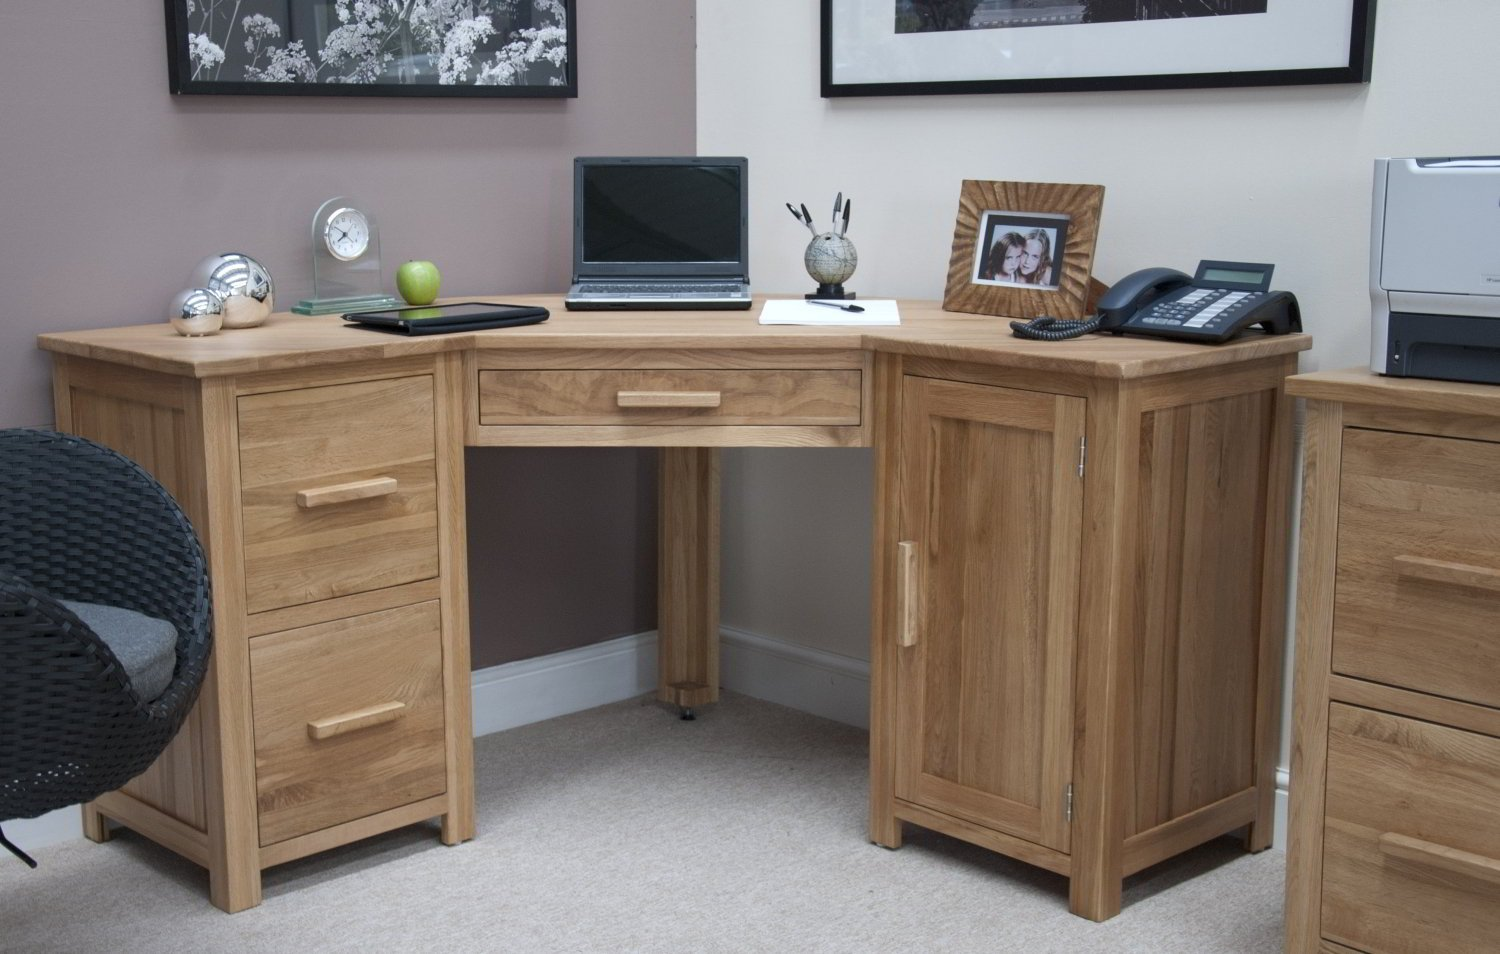 Oak office desk benefits for home office - Eton Solid Oak Furniture Office Pc Corner Computer Desk Amazon Co Uk Kitchen Home